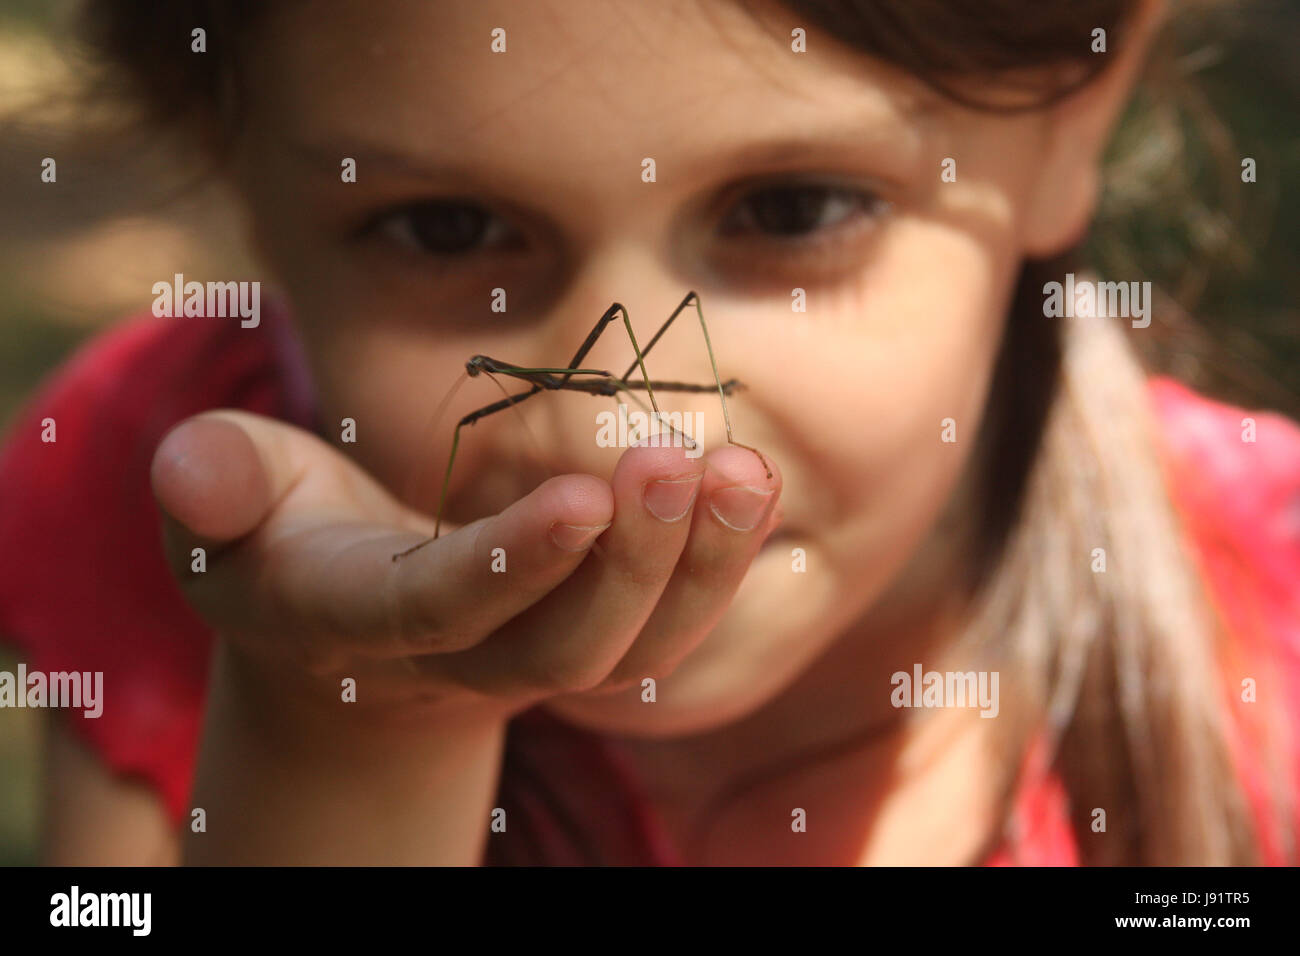 Little girl with walking stick insect in her palm - Stock Image